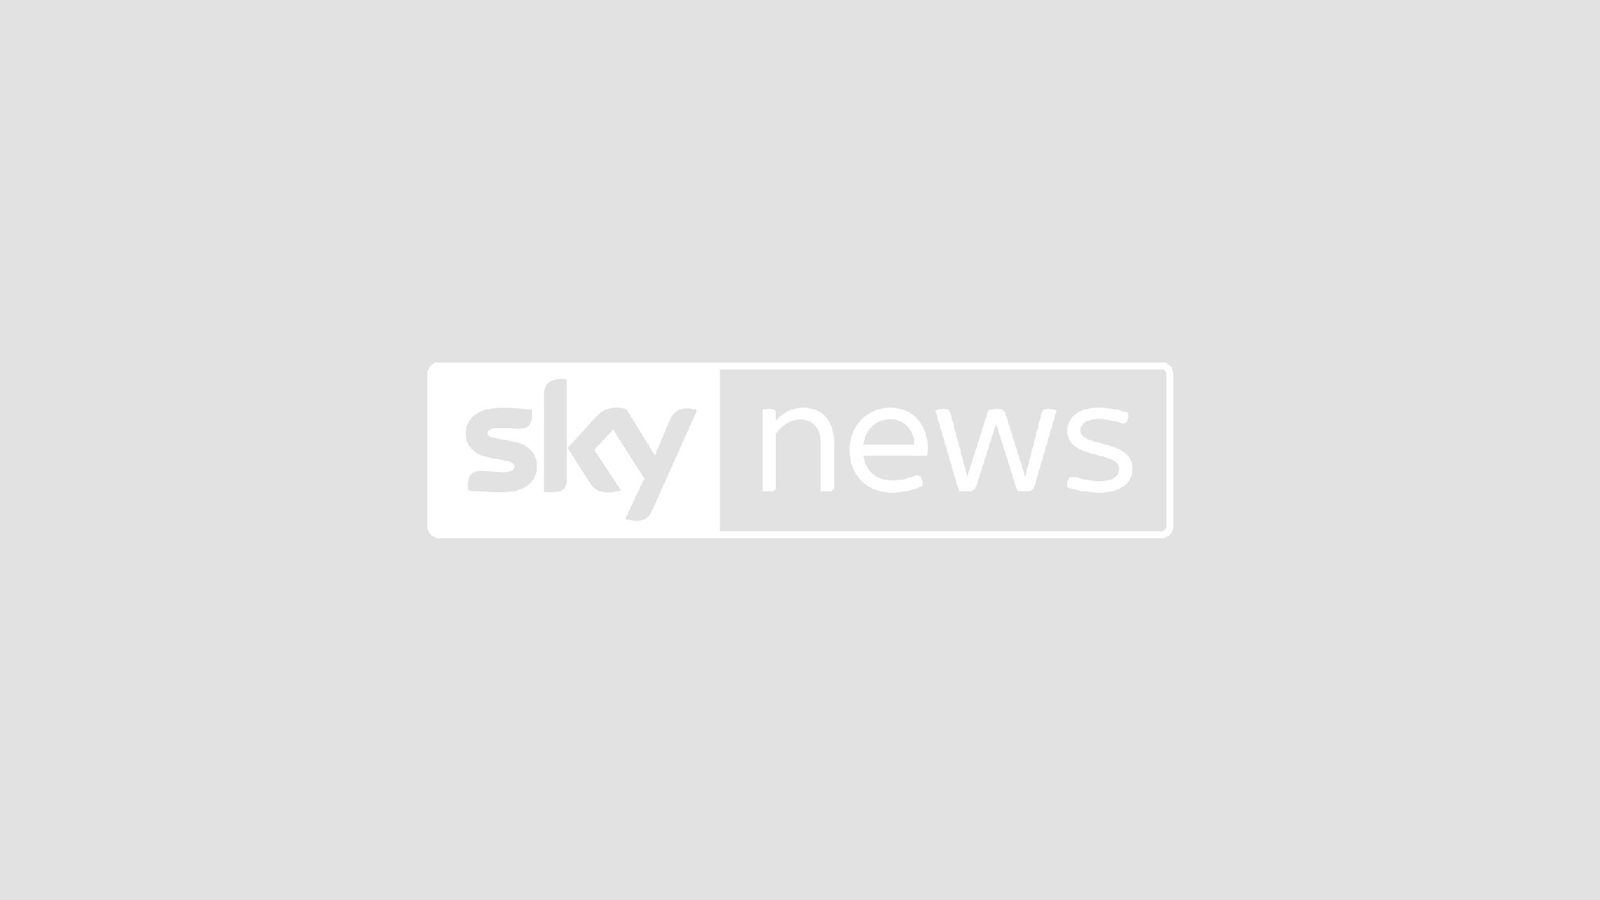 Sky News For Your Phone